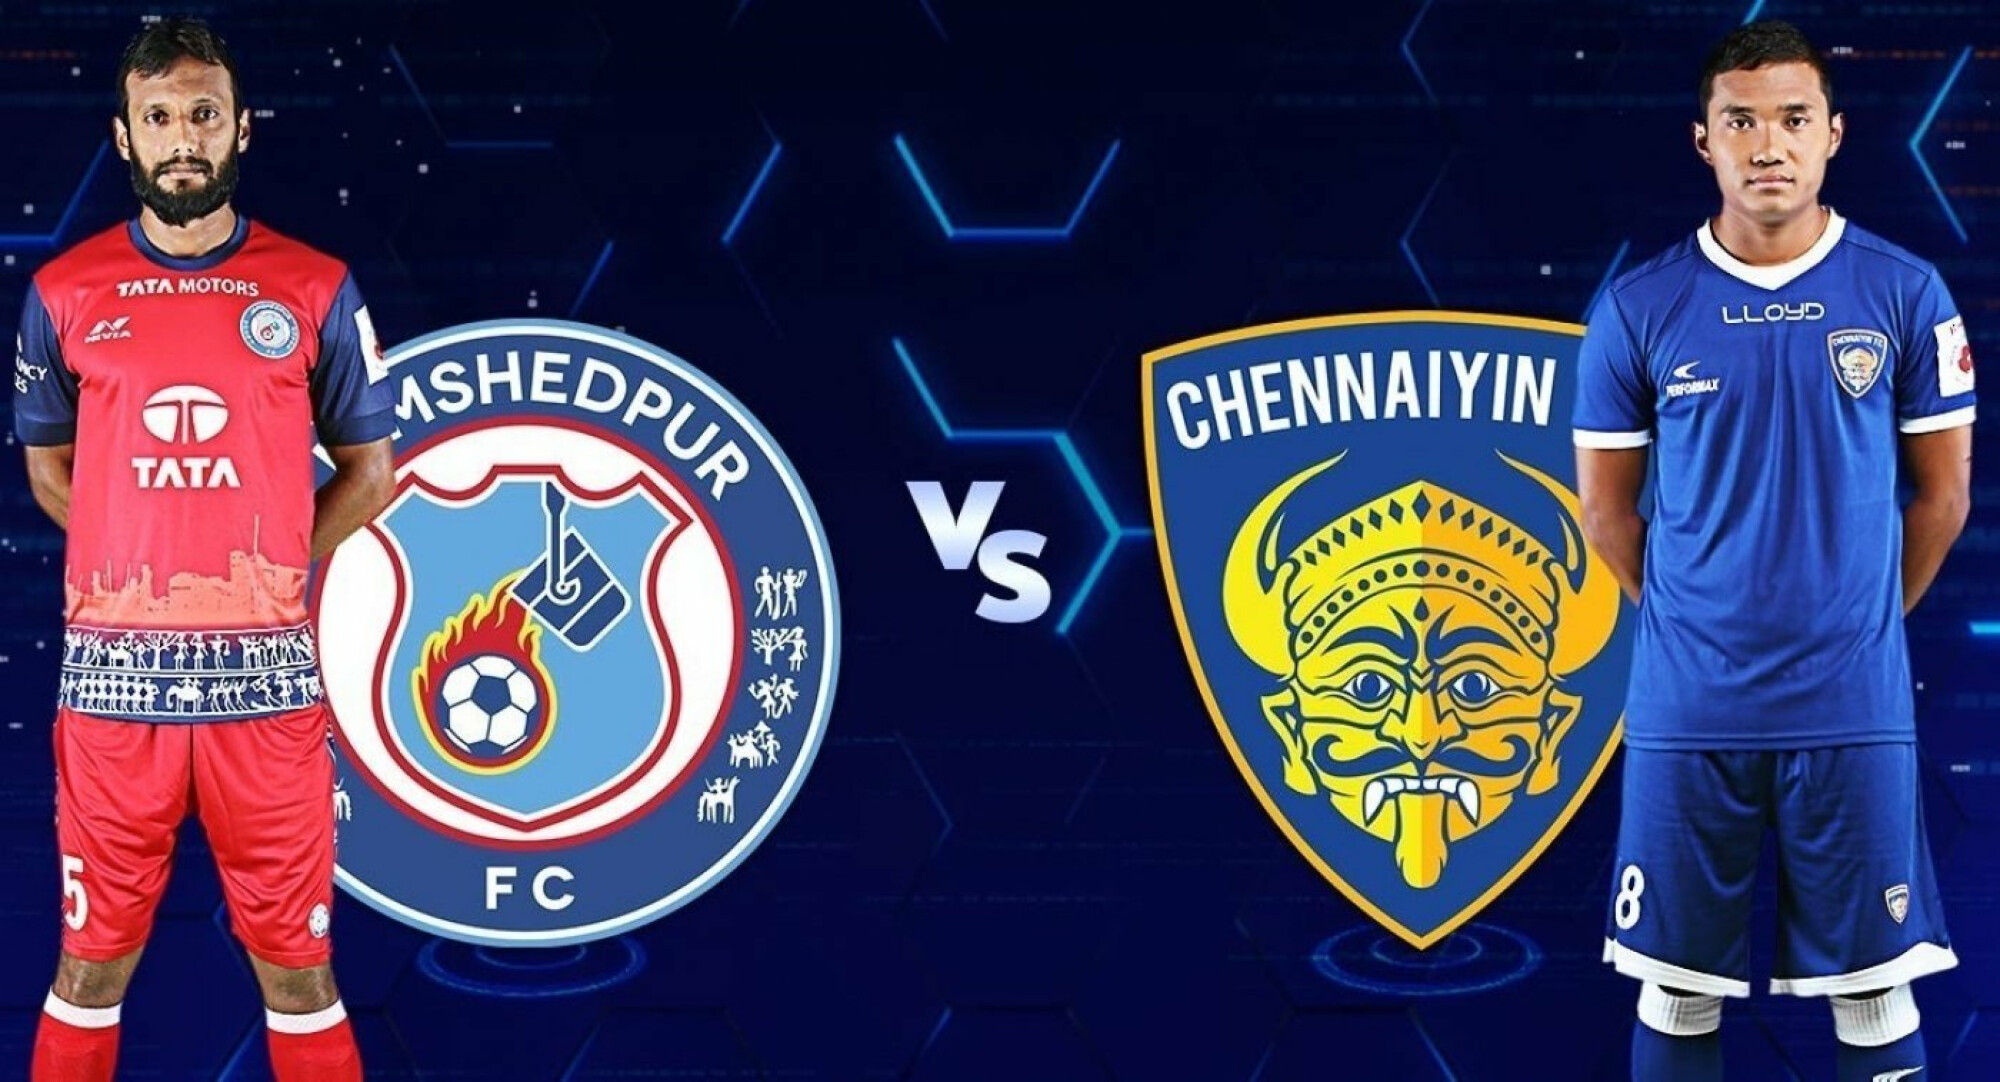 Jamshedpur FC vs Chennaiyin FC, the build-up.